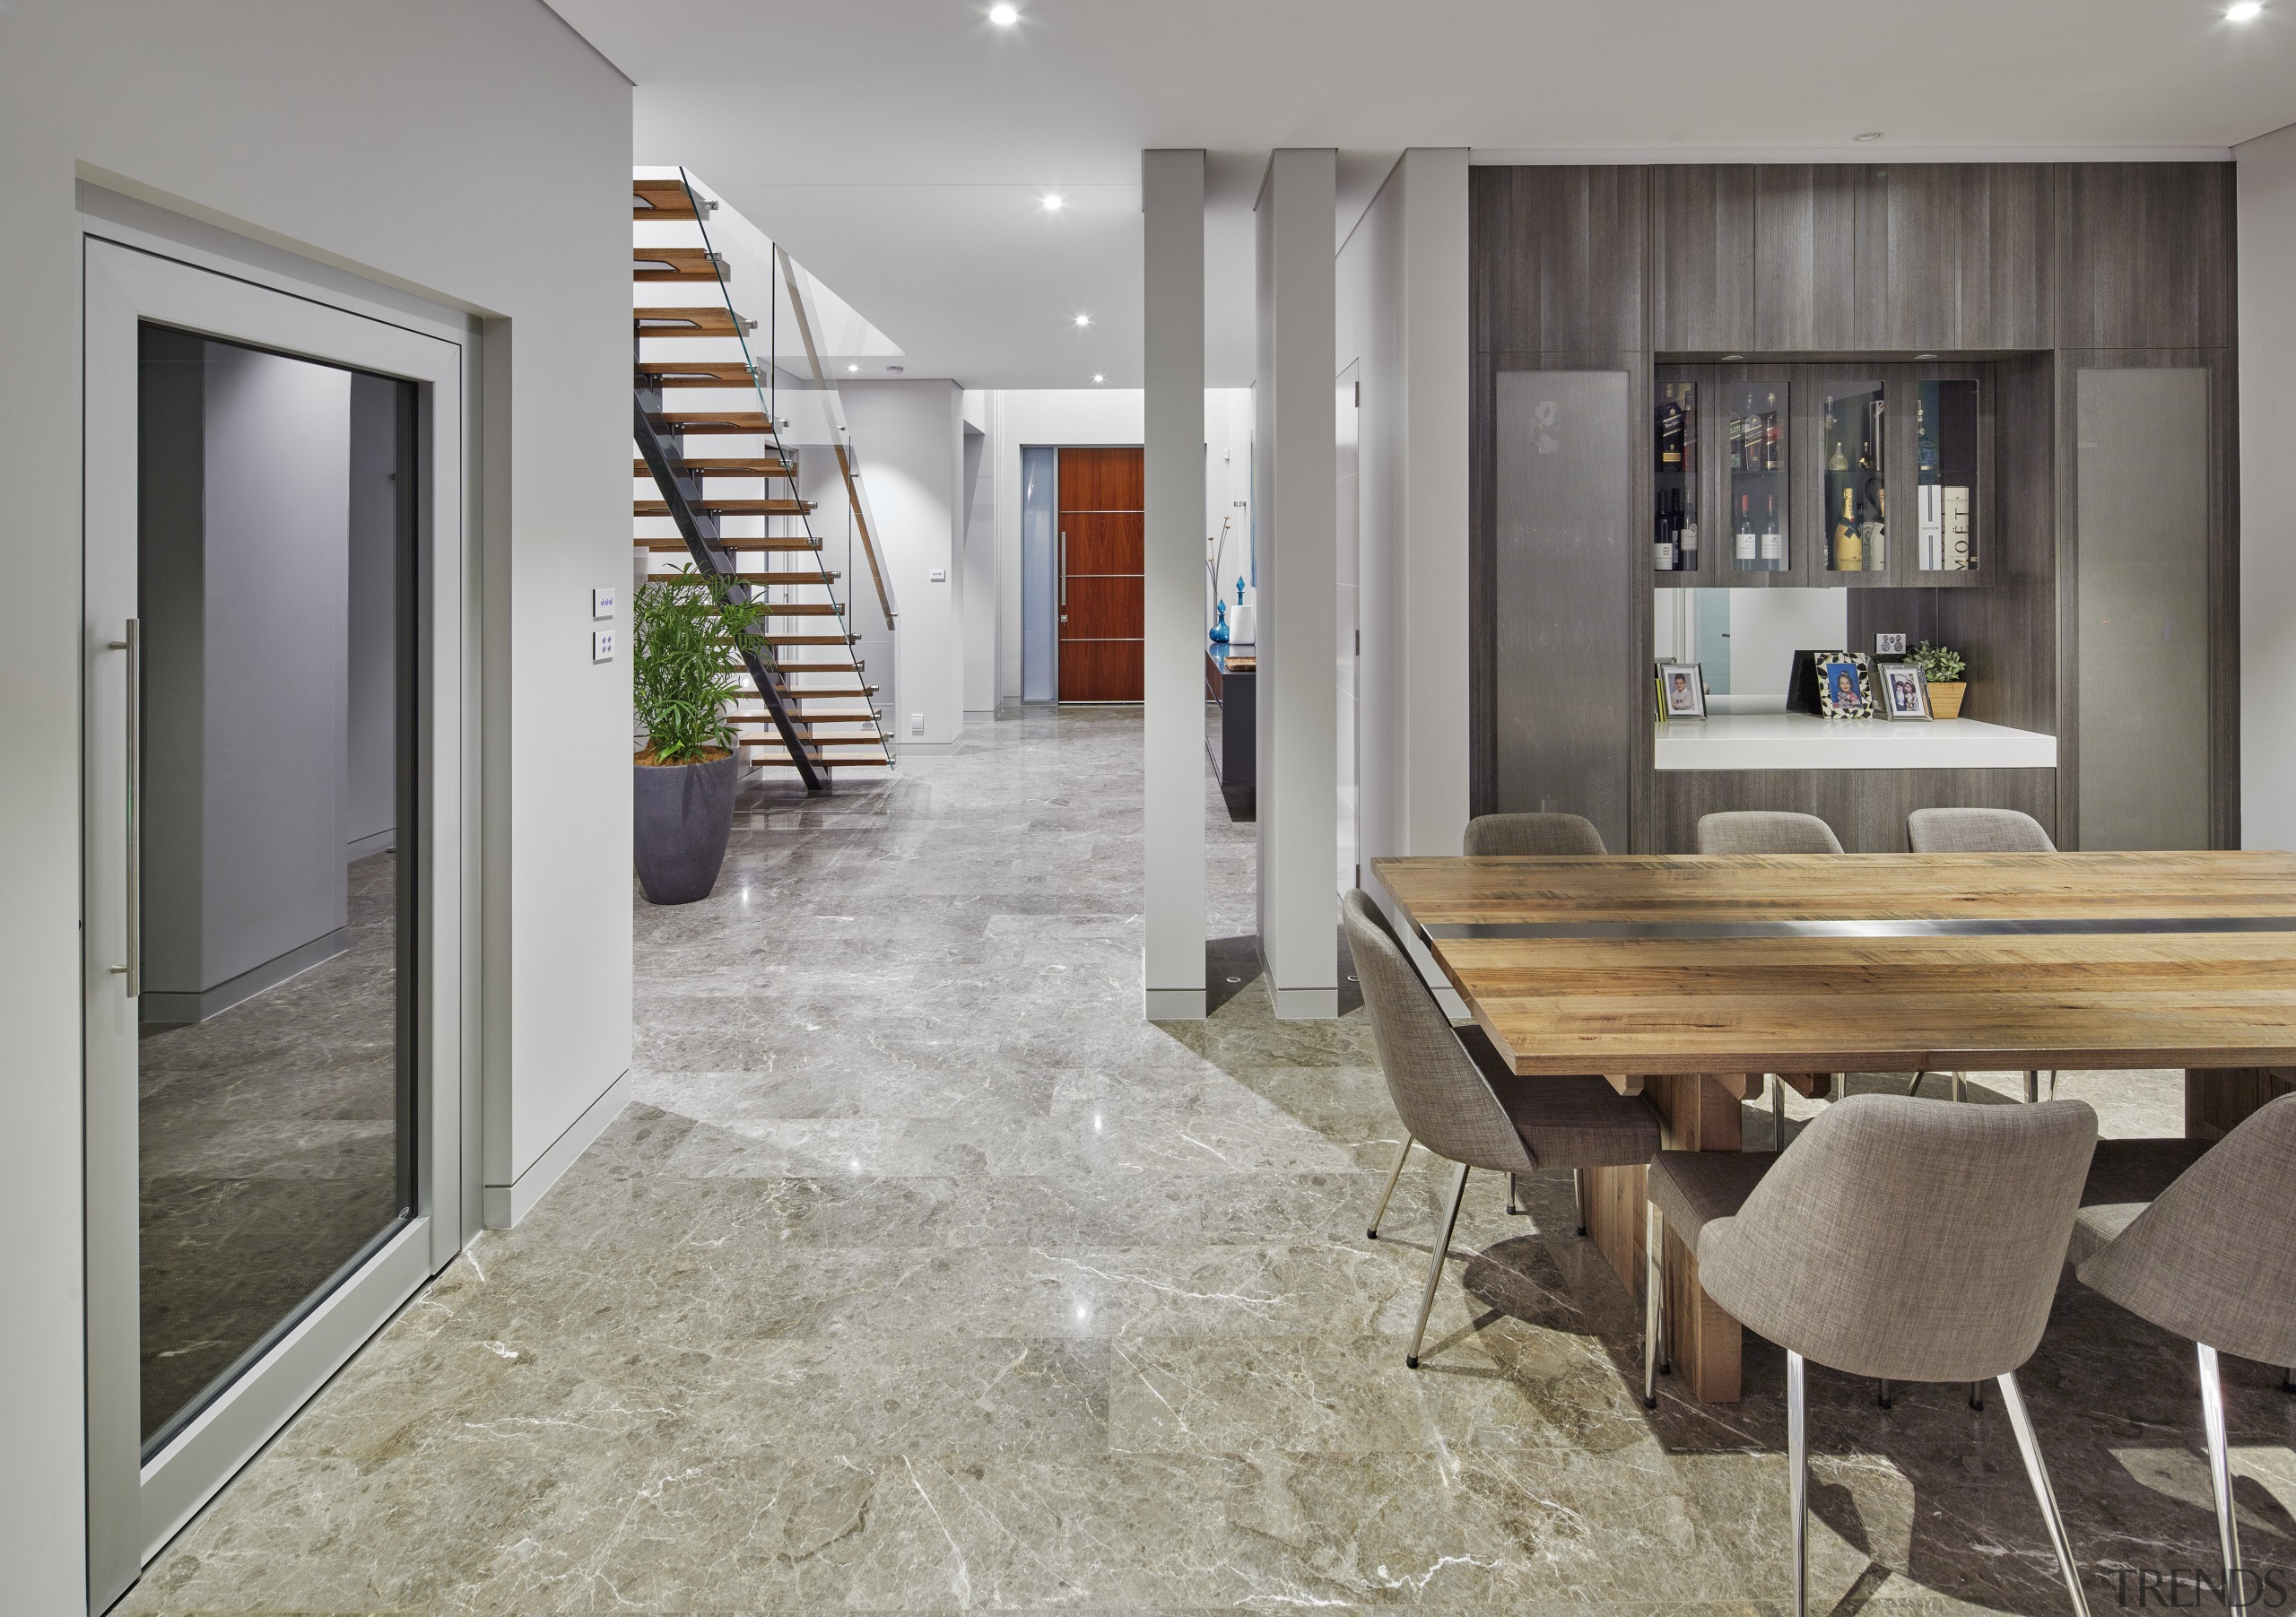 Grand approach  on this house built by floor, flooring, interior design, real estate, wood flooring, gray